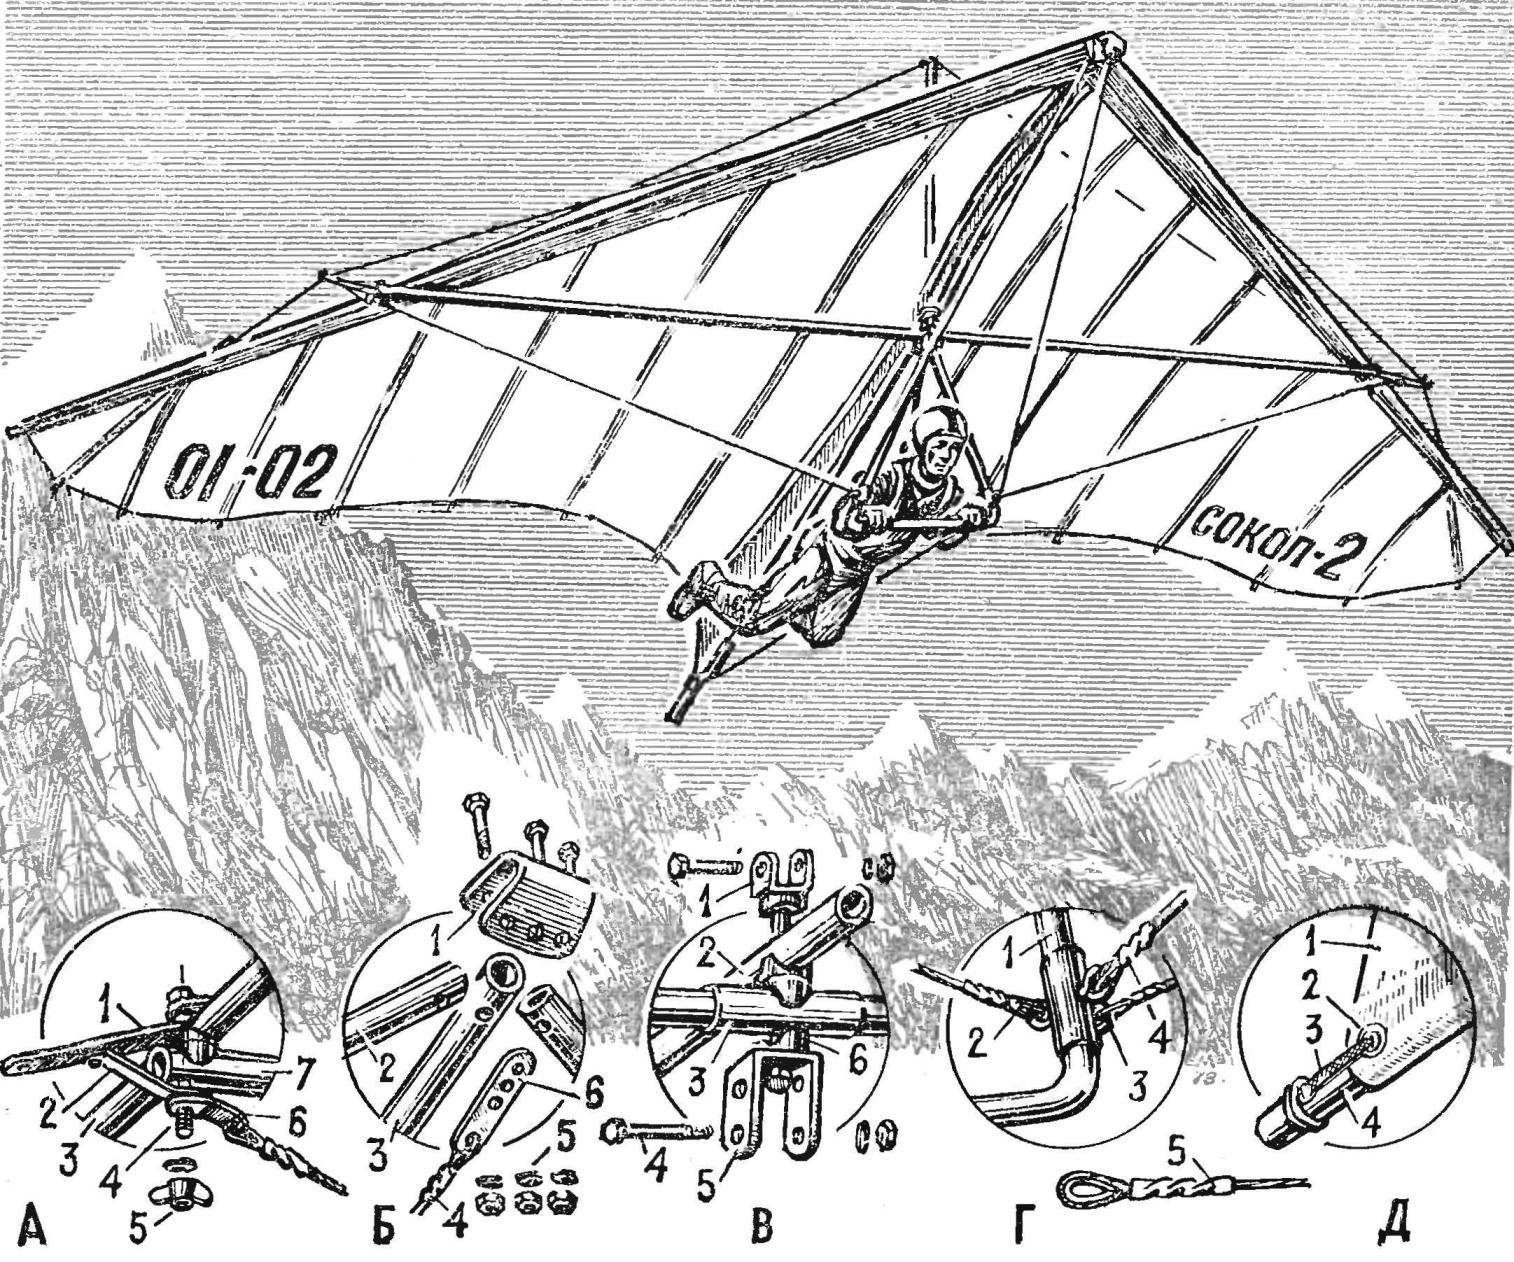 Fig. 1. The overall layout of the glider